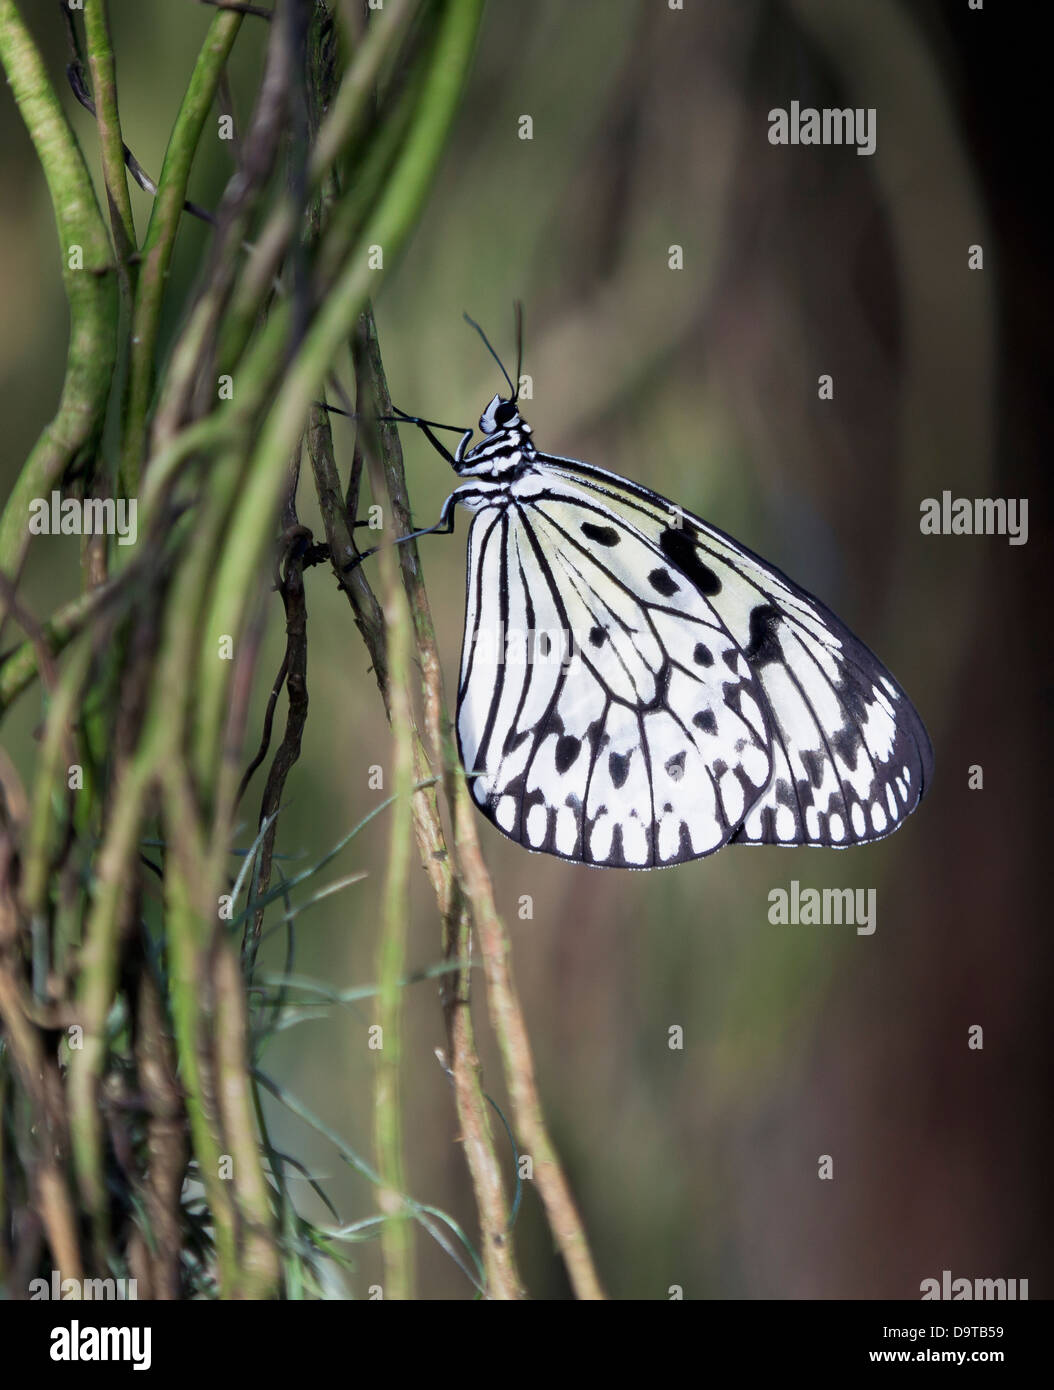 Black and white tree nymph butterfly (Idea Leuconoe) - Stock Image